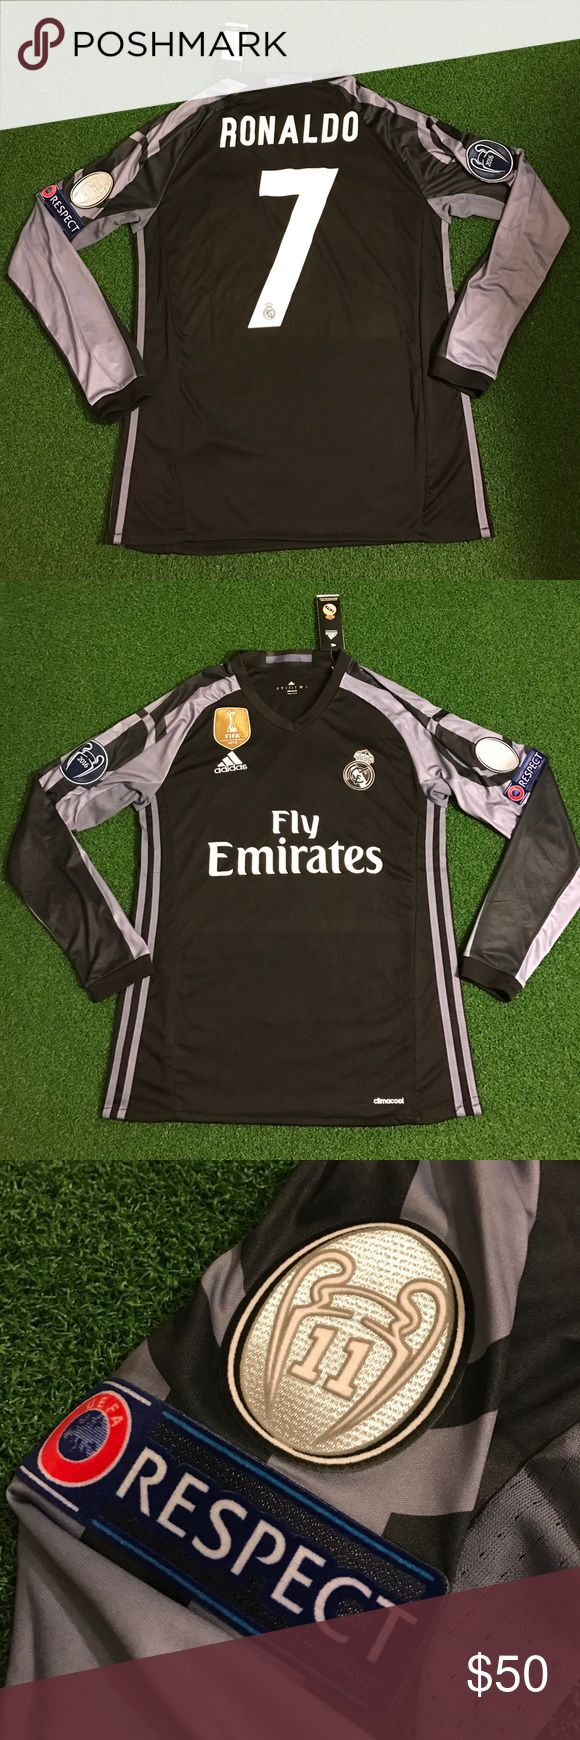 RONALDO Soccer Jersey Champions League Real Madrid New with tags. 2016/2017 long sleeve 3rd Real Madrid Soccer Jersey with RONALDO #7 on back! Has champions league patches! Futbol top - kit - uniform Shirts Tees - Long Sleeve